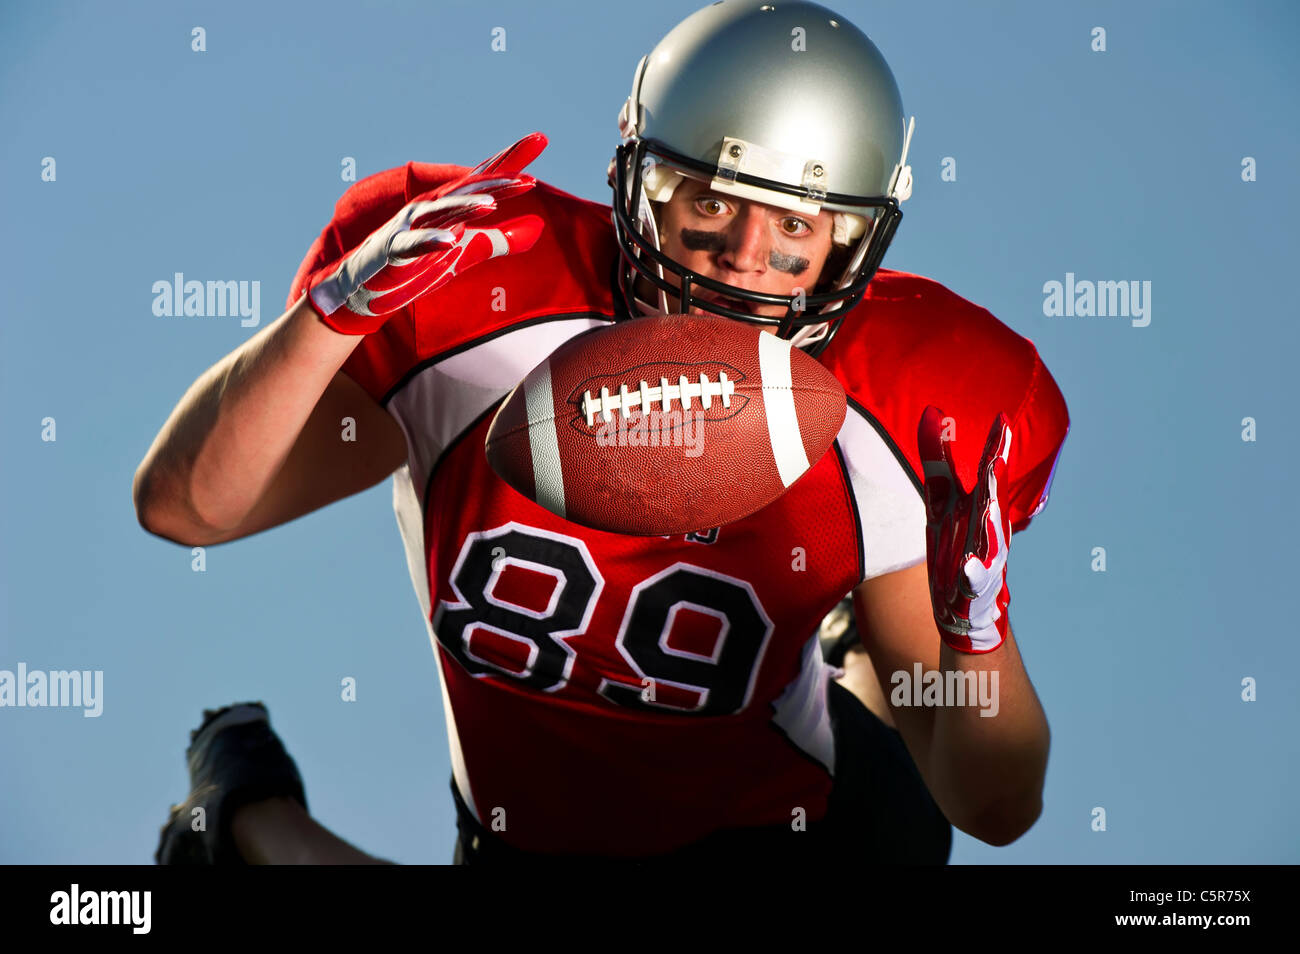 American Football player focused on making the catch. - Stock Image